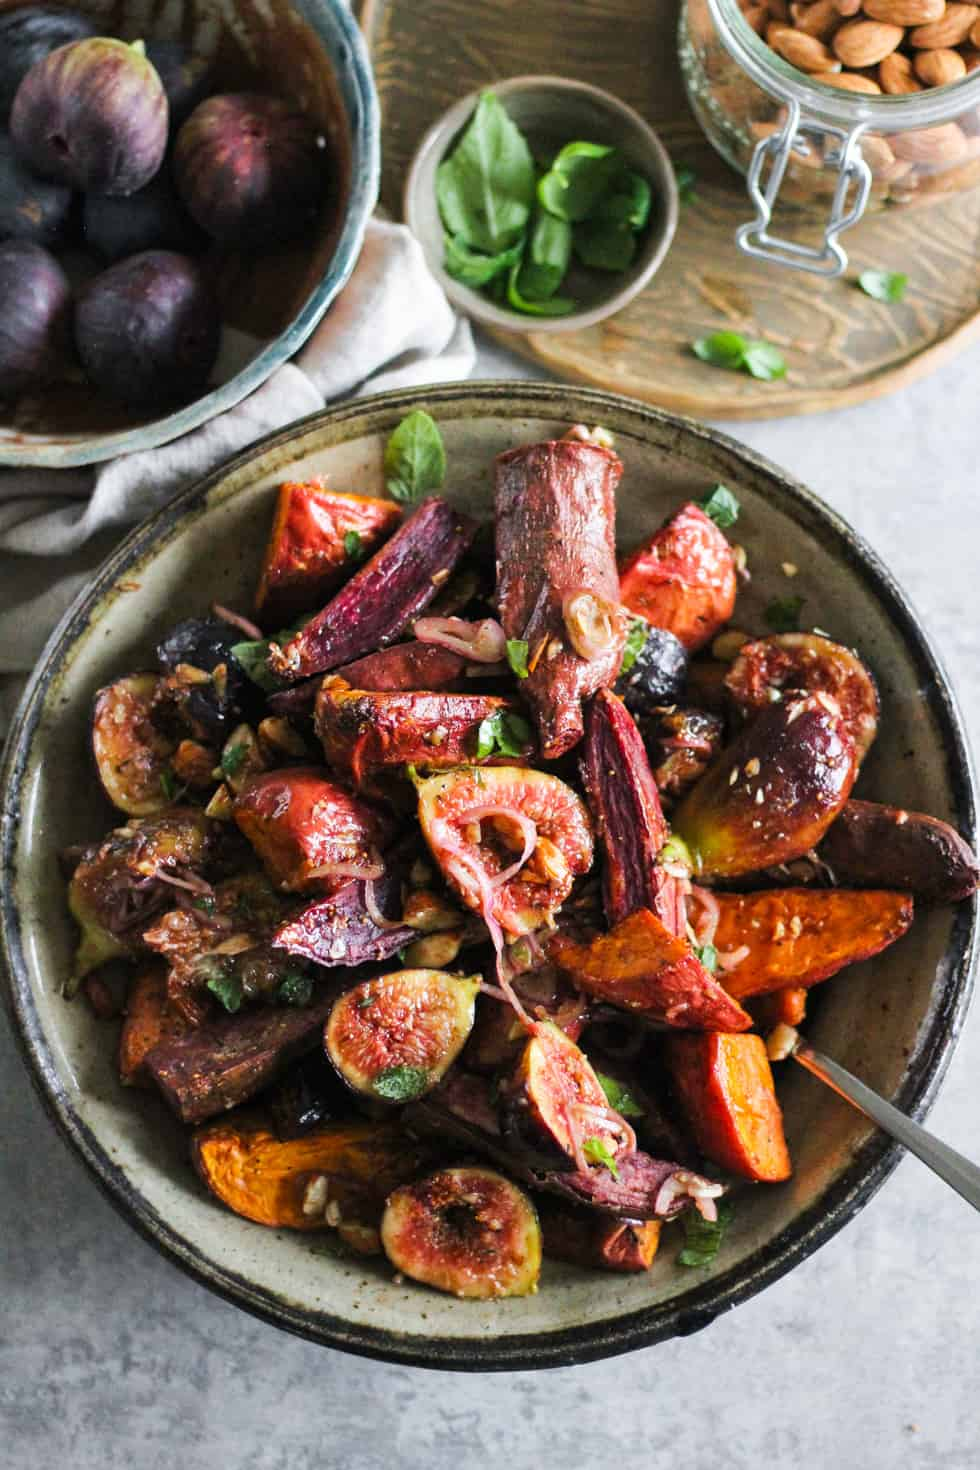 Sustainable living dish: figs and sweet potatoes in ceramic bowl.